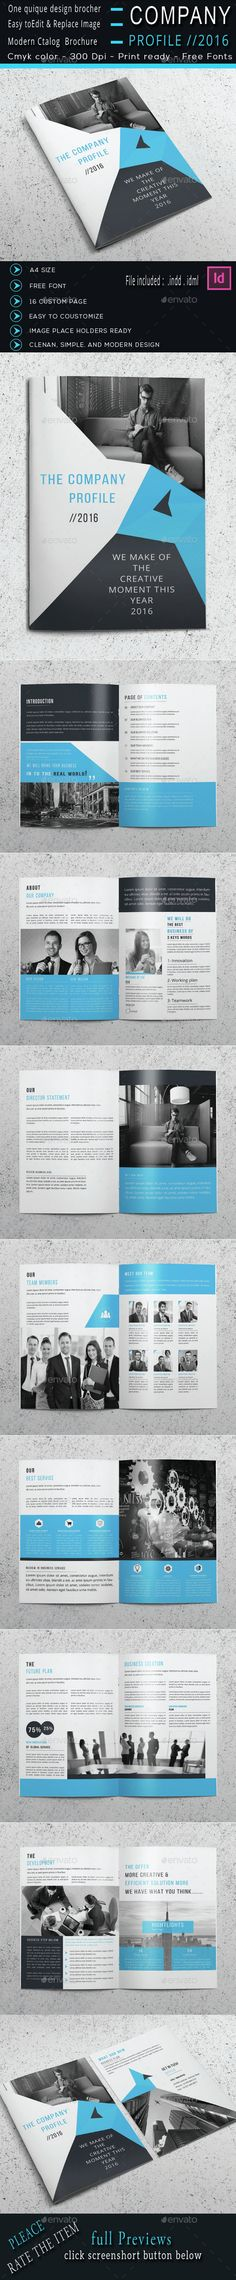 The Company Profile Brochure Template InDesign INDD. Download here: http://graphicriver.net/item/the-company-profile/14953816?ref=ksioks